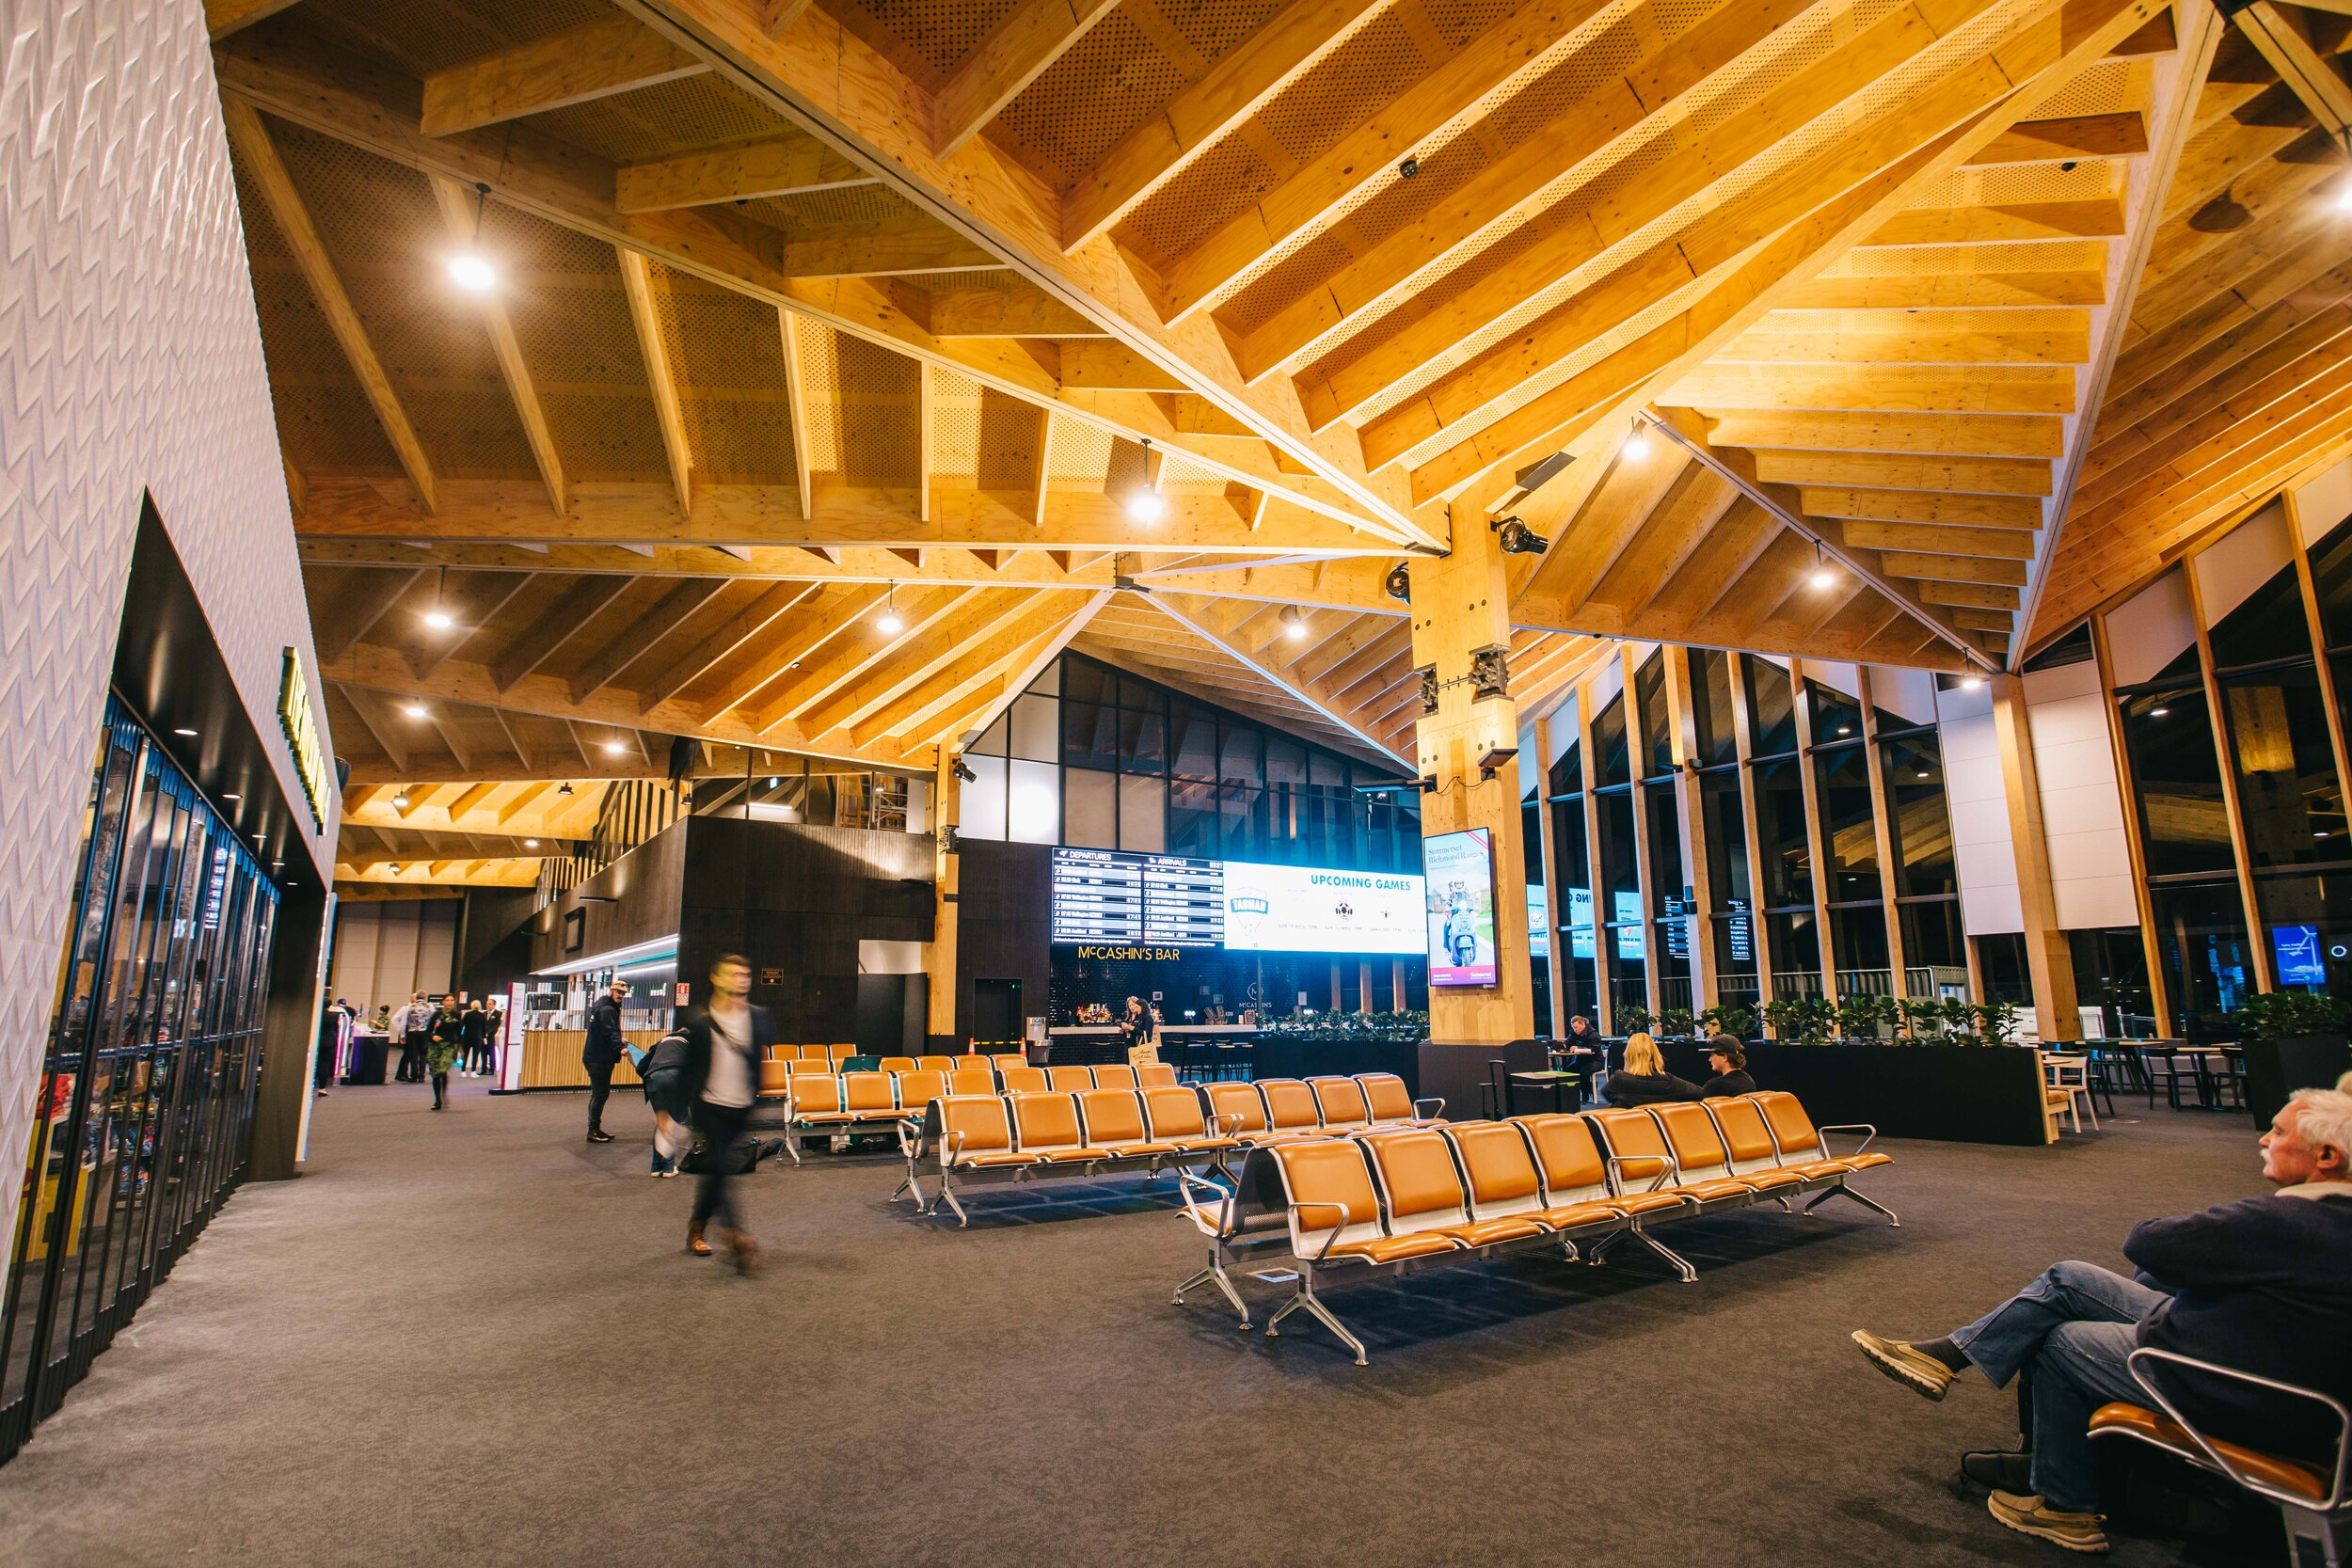 Aotea Electric Nelson Are Proud To Have Worked On The Award Winning Nelson Airport